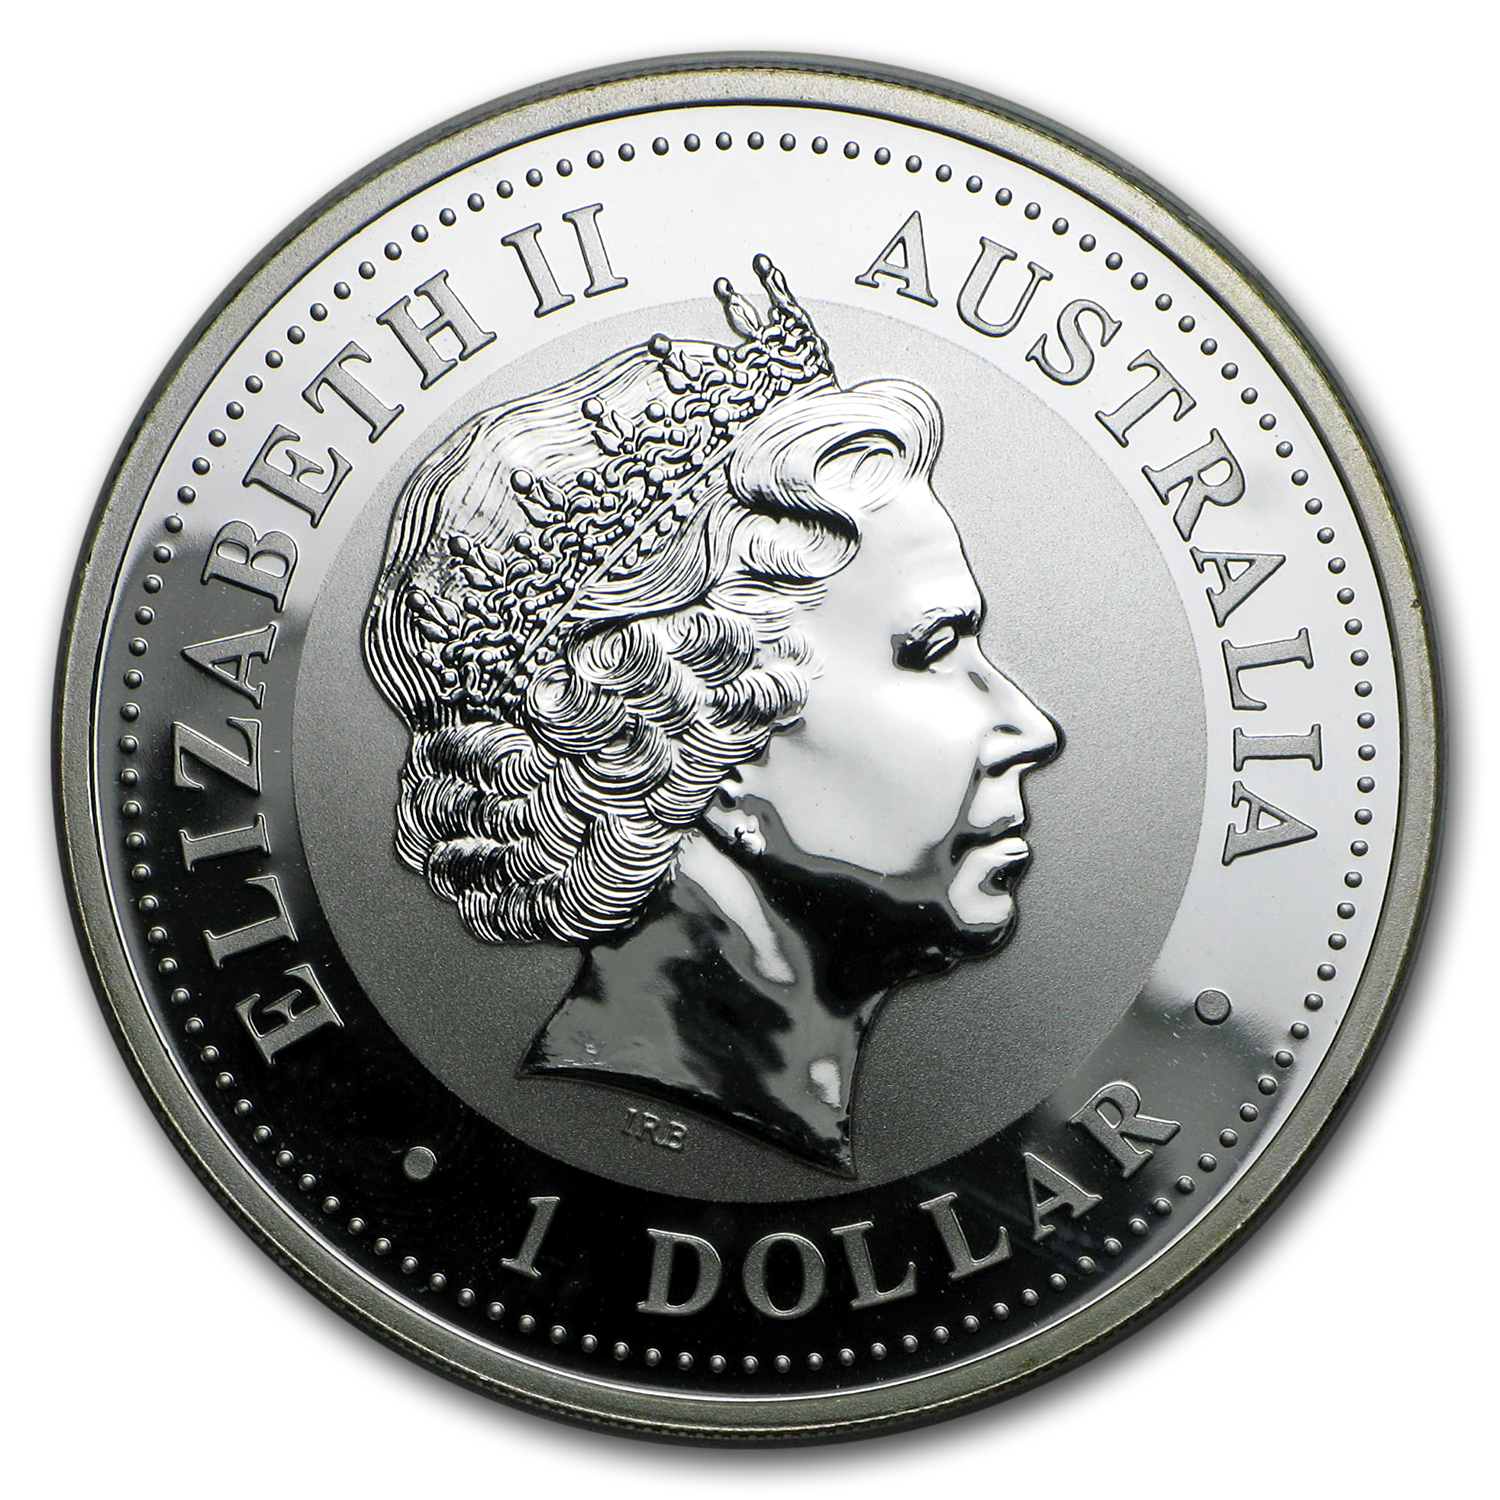 1999 Australia 3-Coin BU Mini Outback Collection